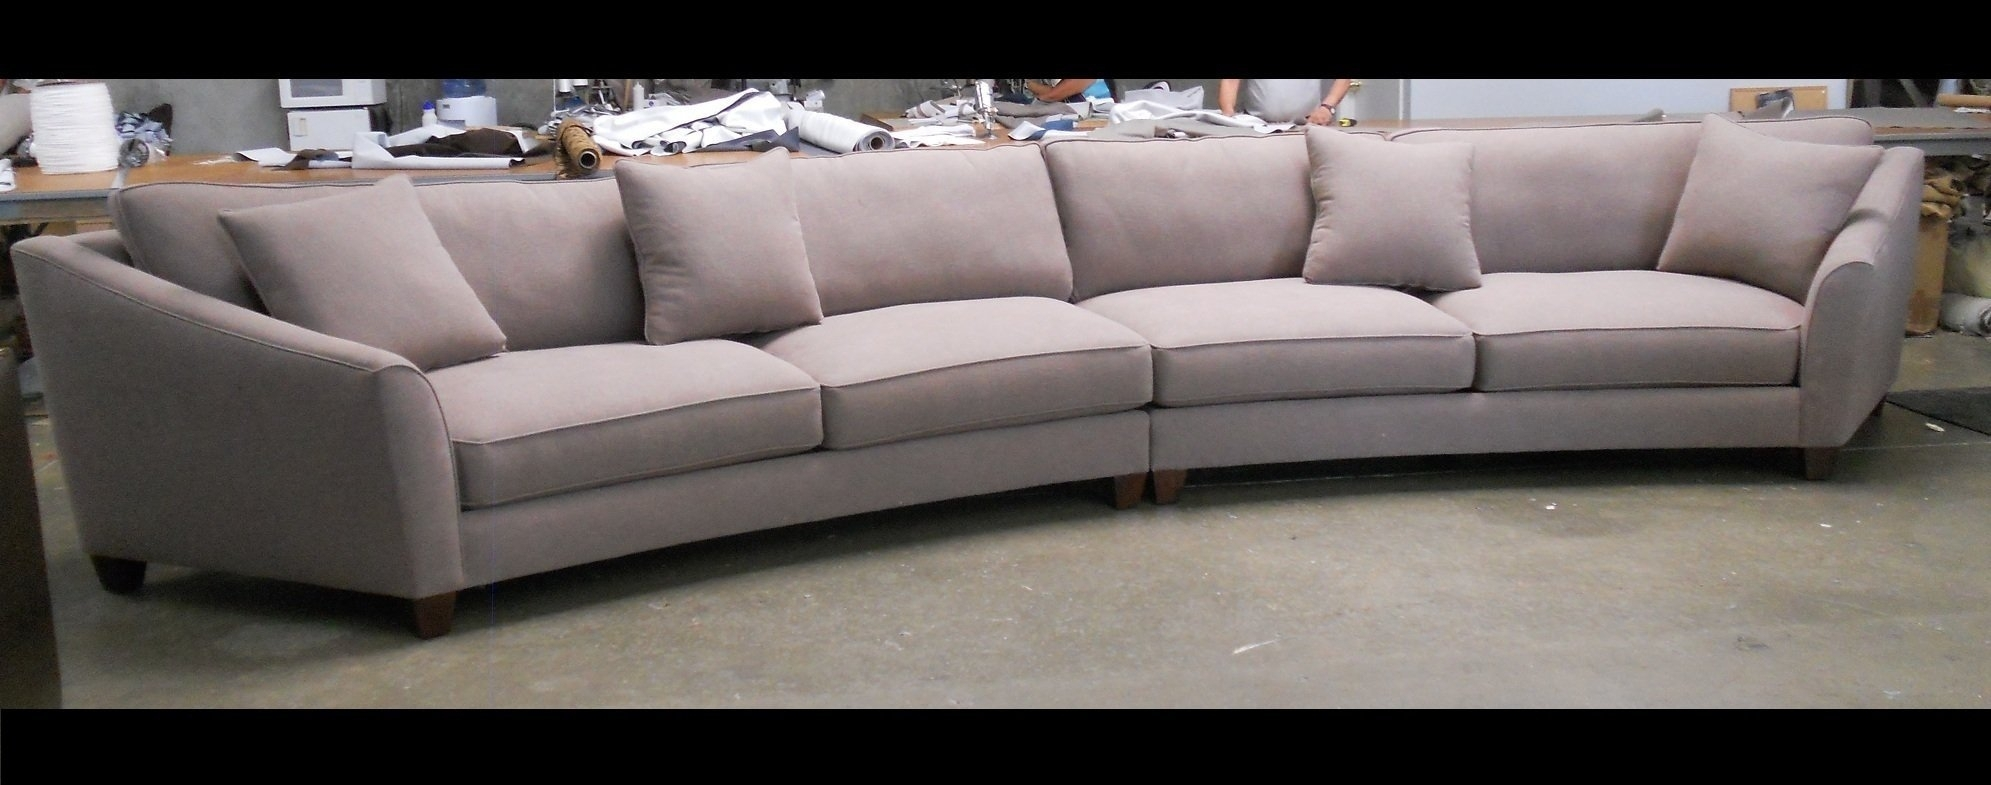 Furniture : 7 Ft Sectional Sofa Sectional Sofa 110 X 110 Quality with regard to 110X110 Sectional Sofas (Image 3 of 10)